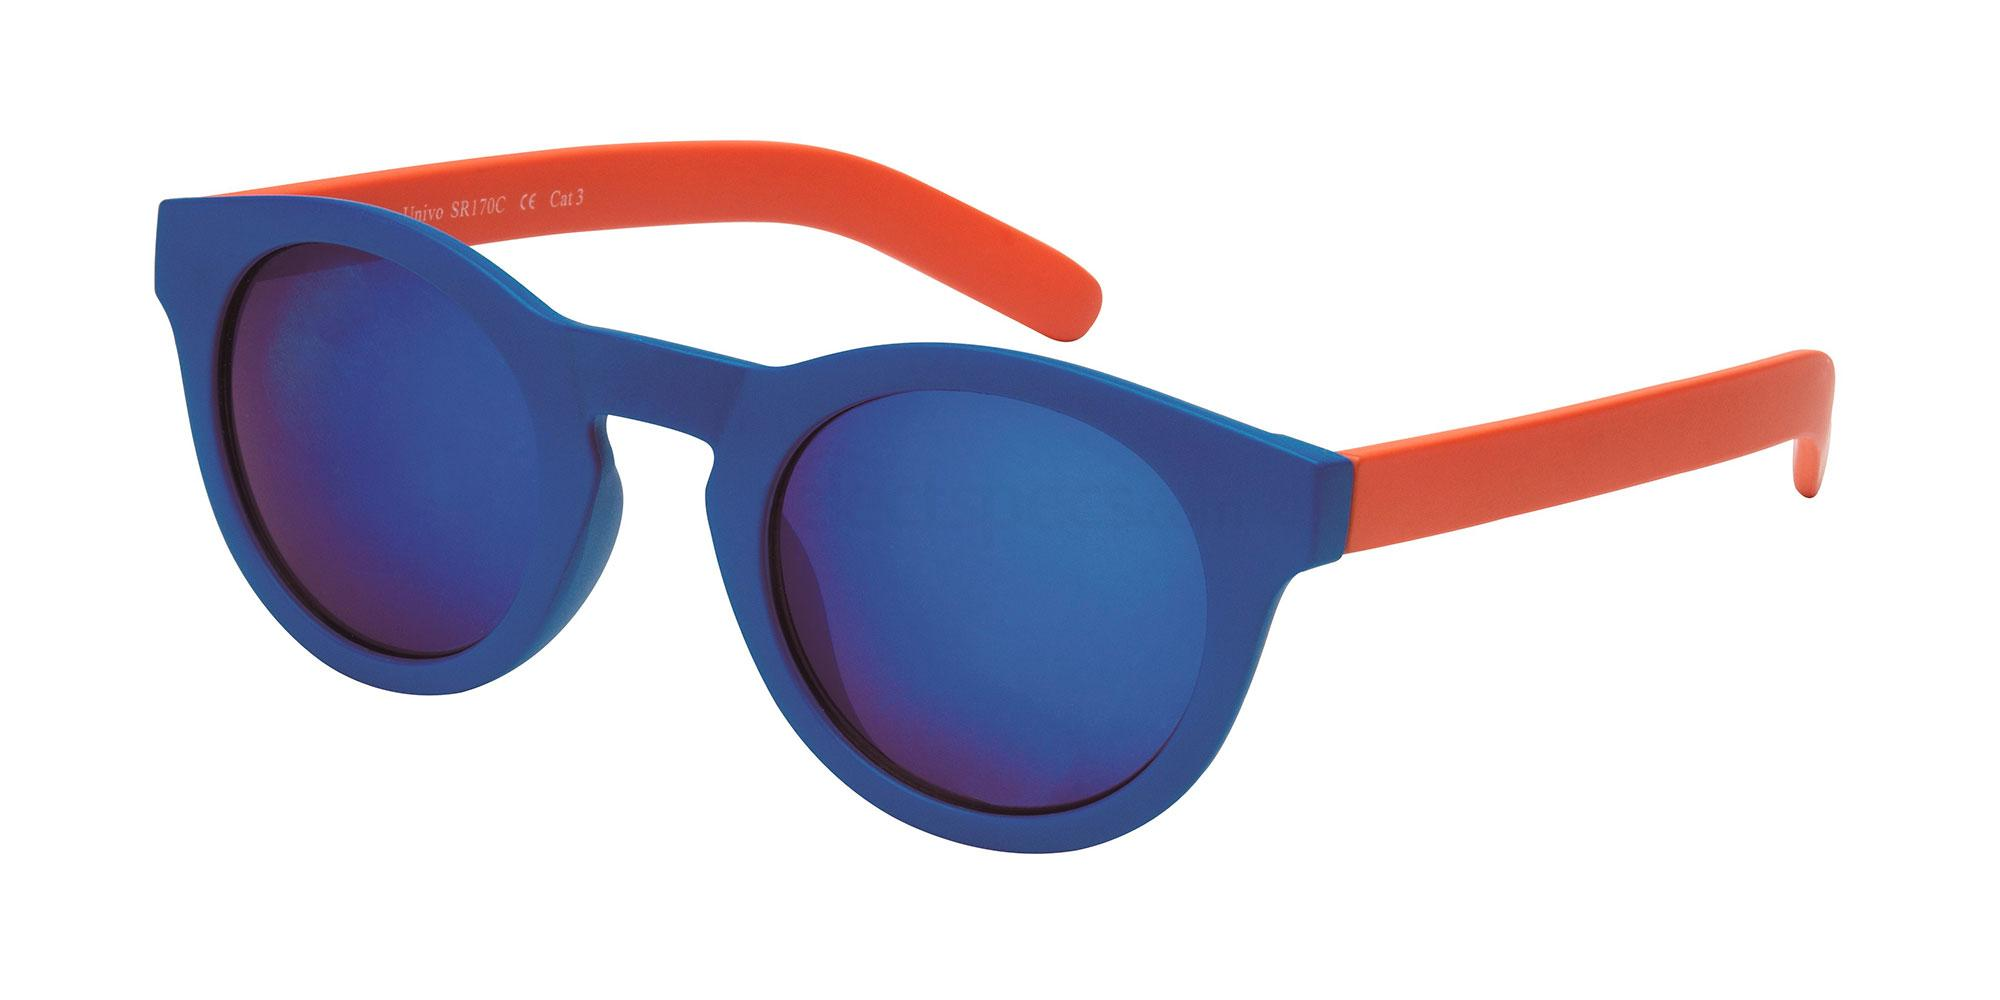 Univo SR170 round sunglasses with blue front and lenses and orange arms